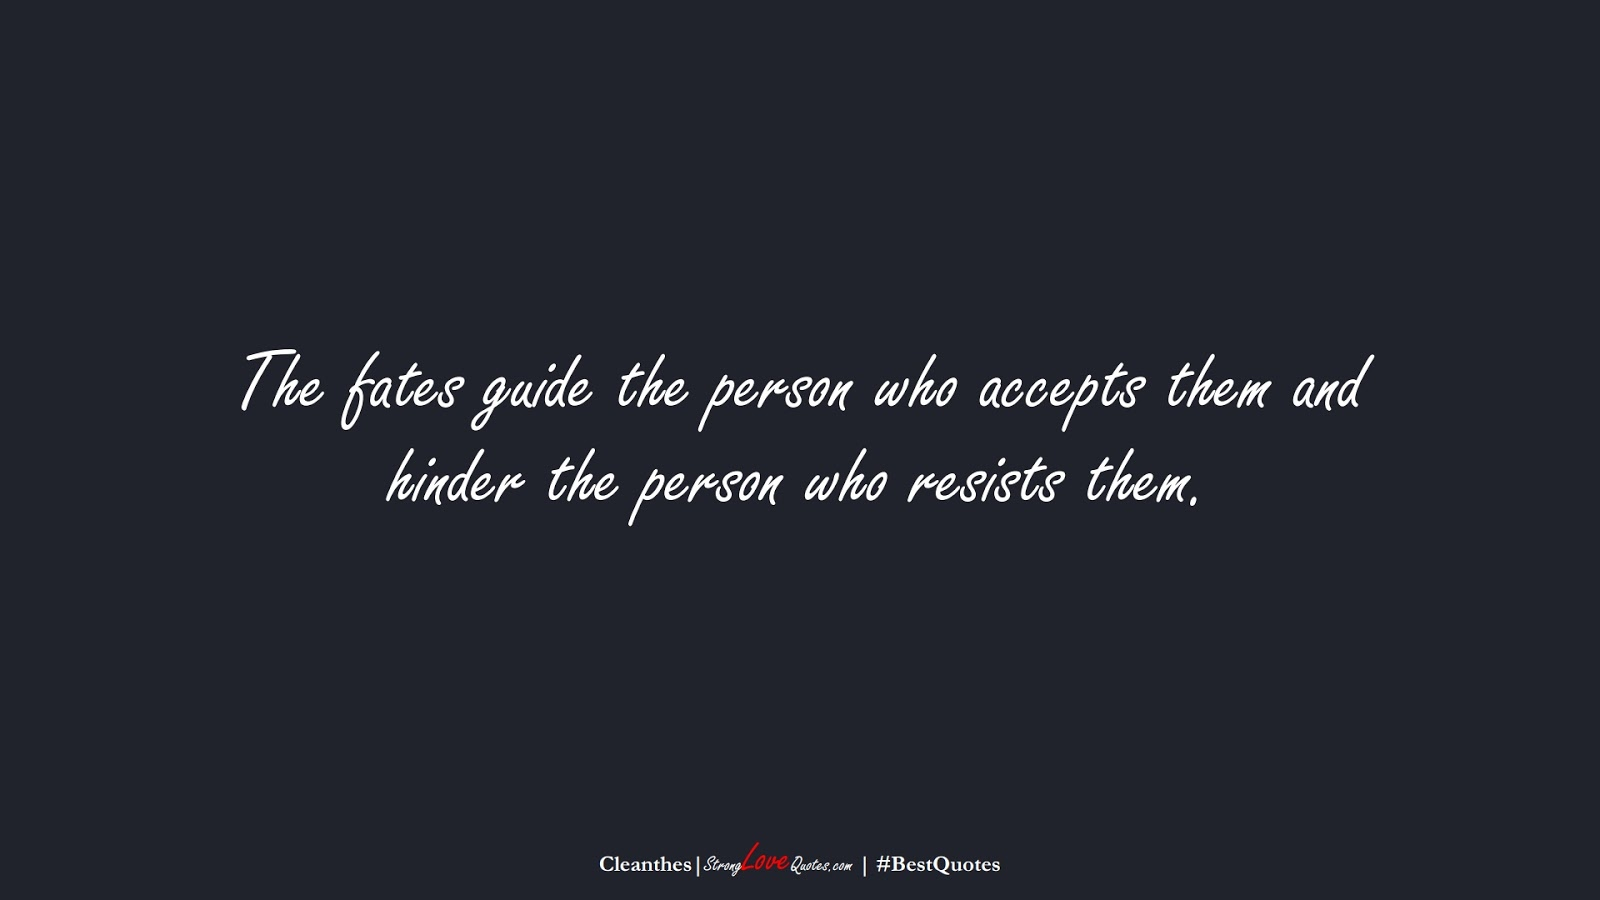 The fates guide the person who accepts them and hinder the person who resists them. (Cleanthes);  #BestQuotes